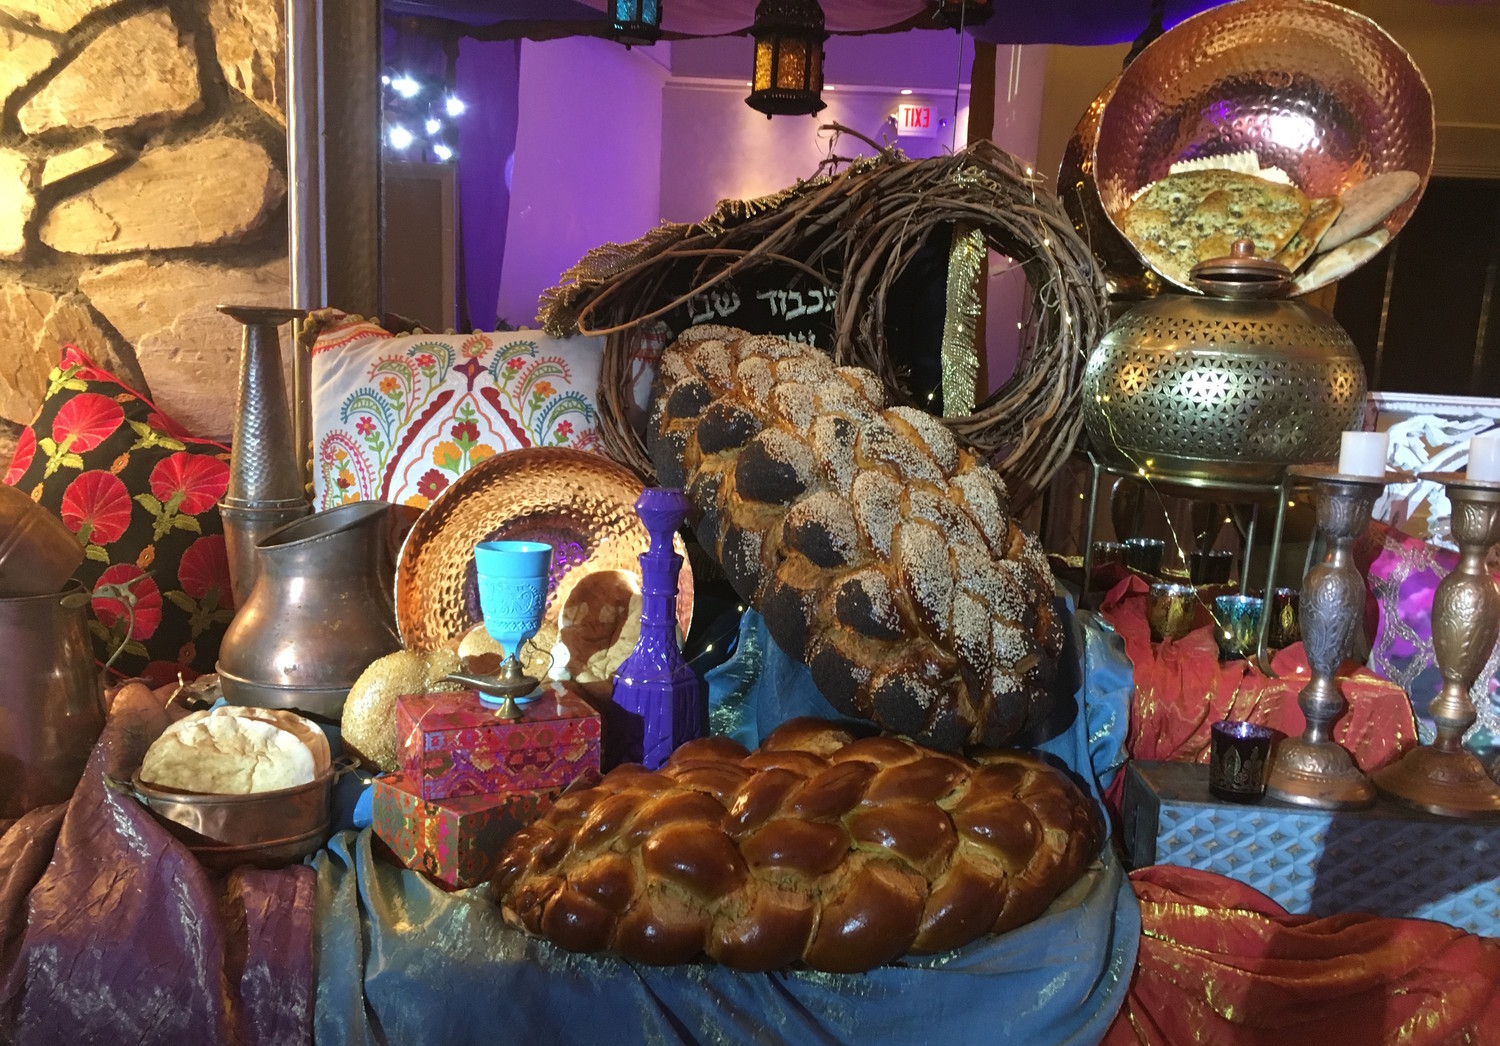 This display greeted participants in Challah Bake Long Island Style on Nov. 1.